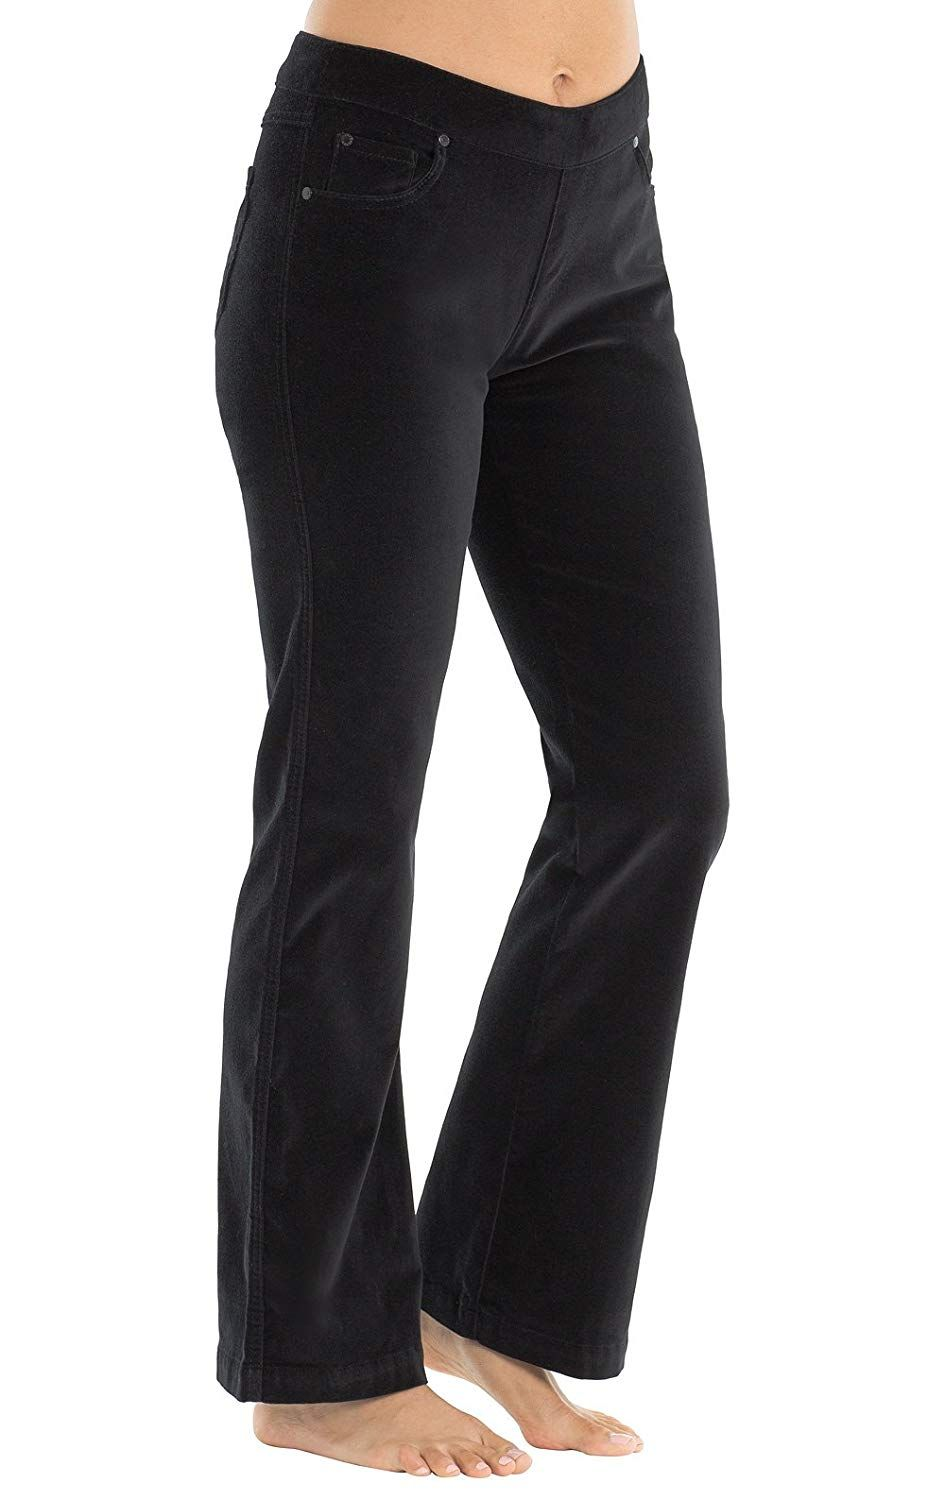 Pajamajeans Women S Velvet Bootcut Pants Black See This Great Product This Is An Affiliate Link Pants Black Bootcut Jeans Women Jeans Pants For Women [ 1500 x 945 Pixel ]